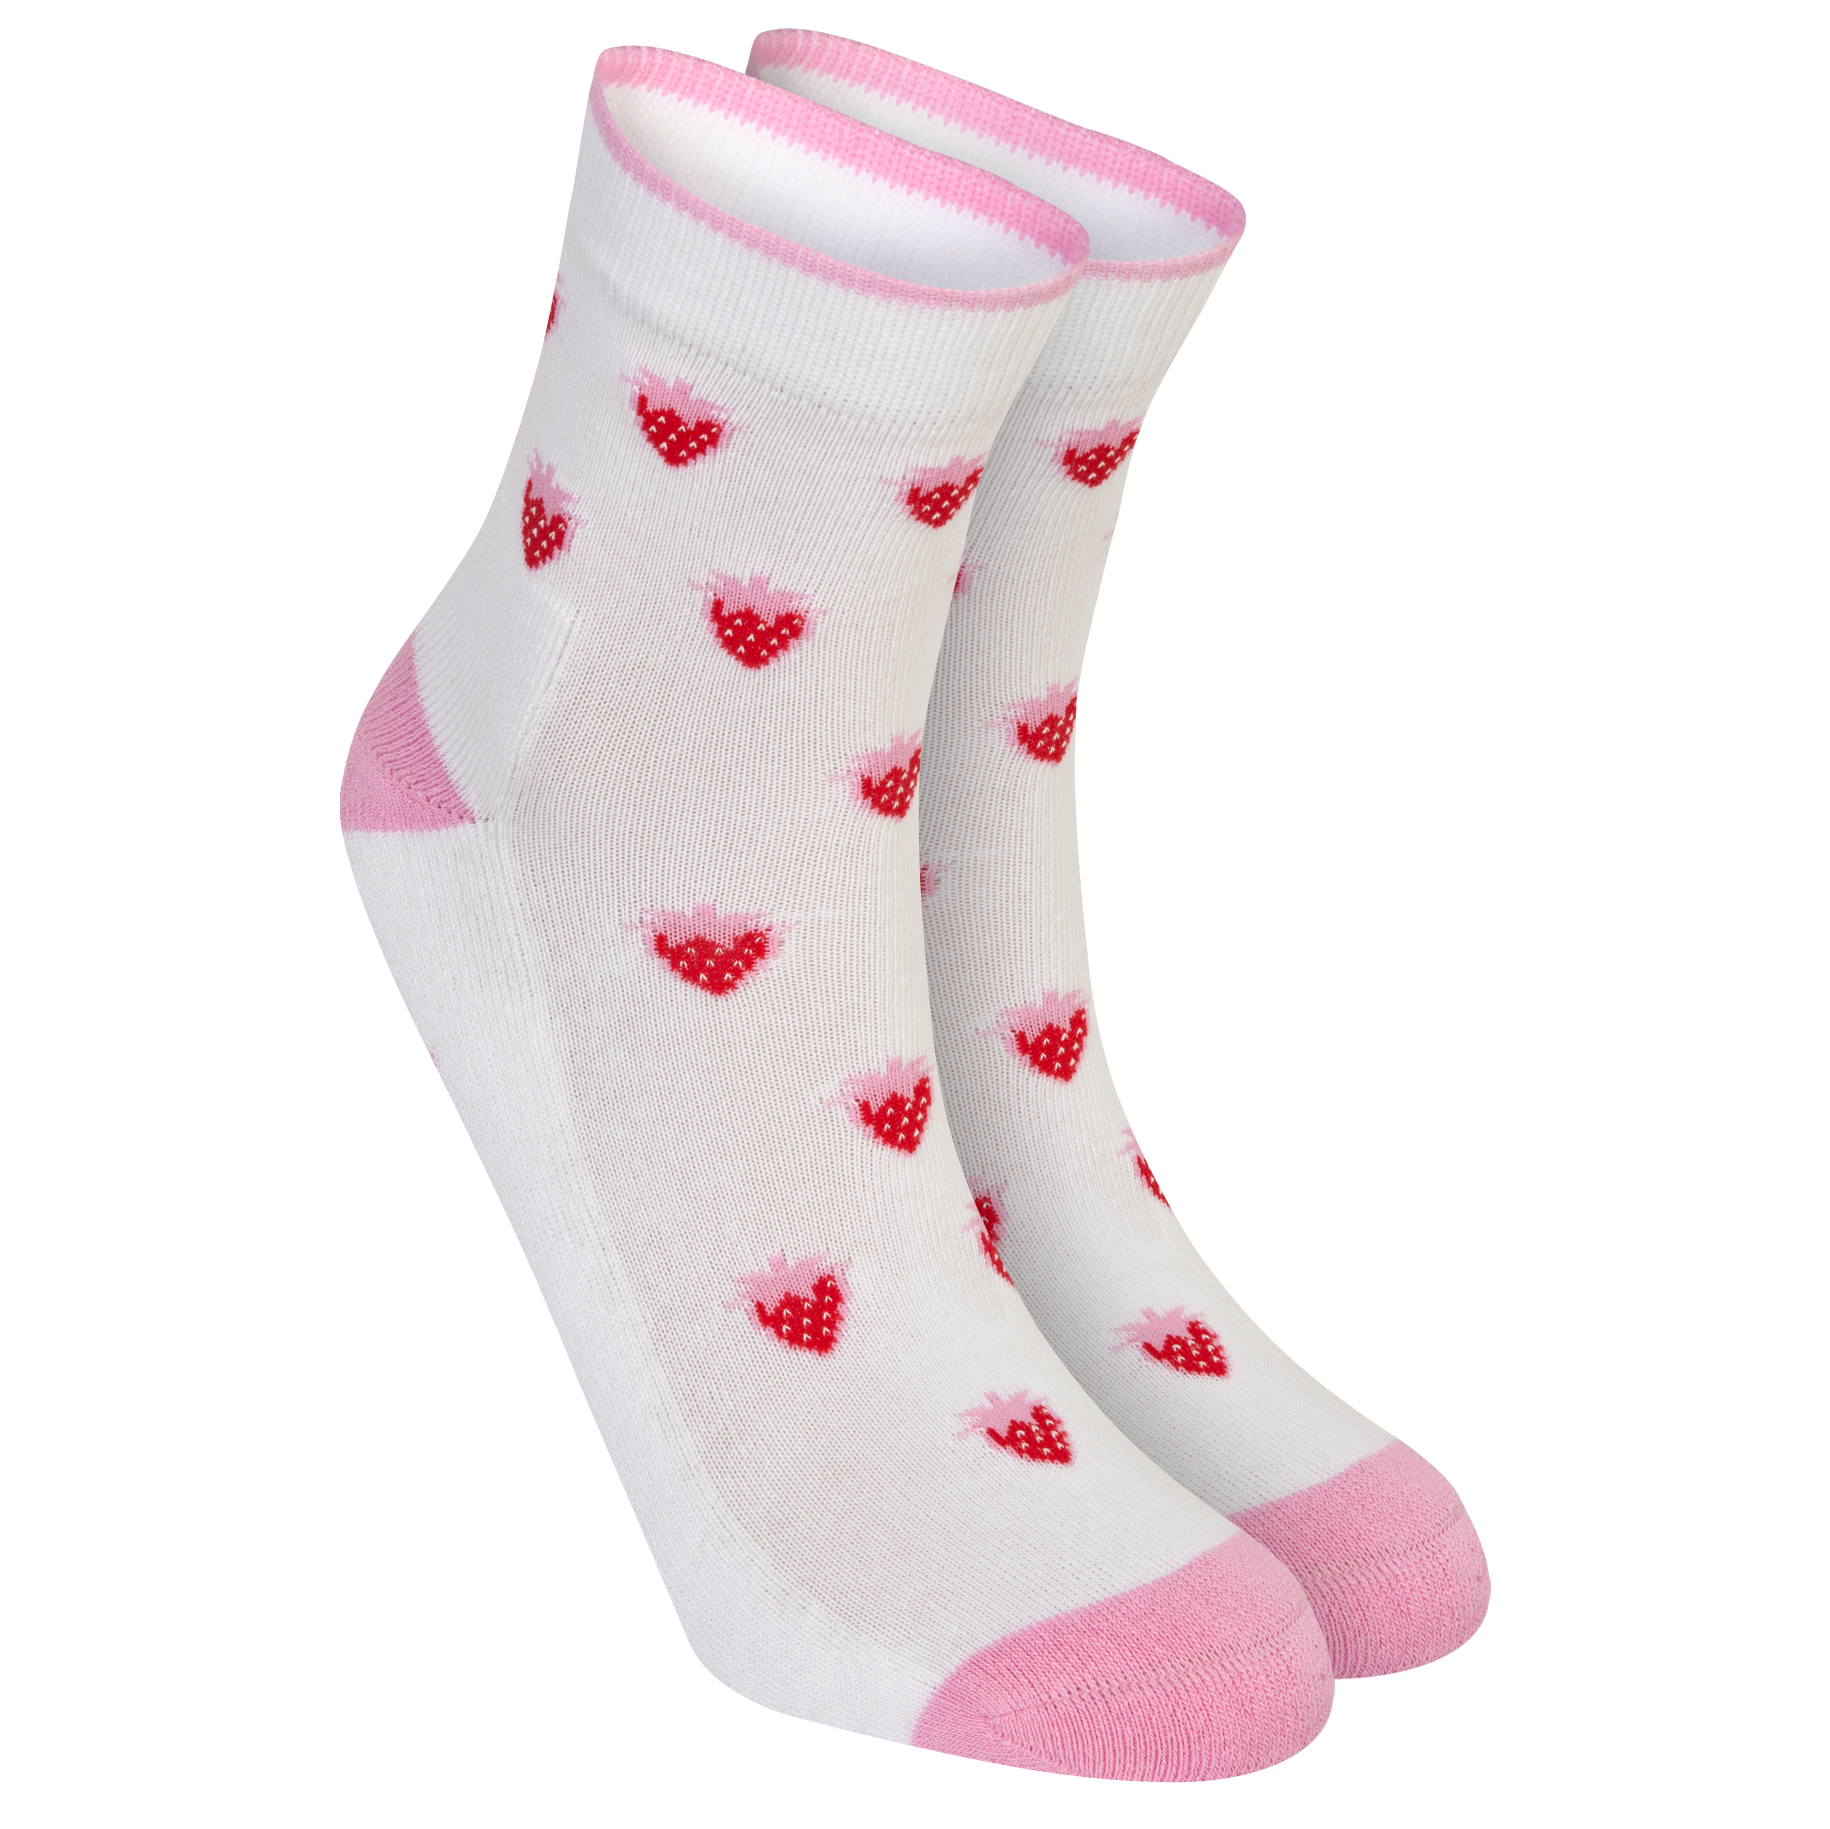 Wimbledon Strawberry Socks - Girls White